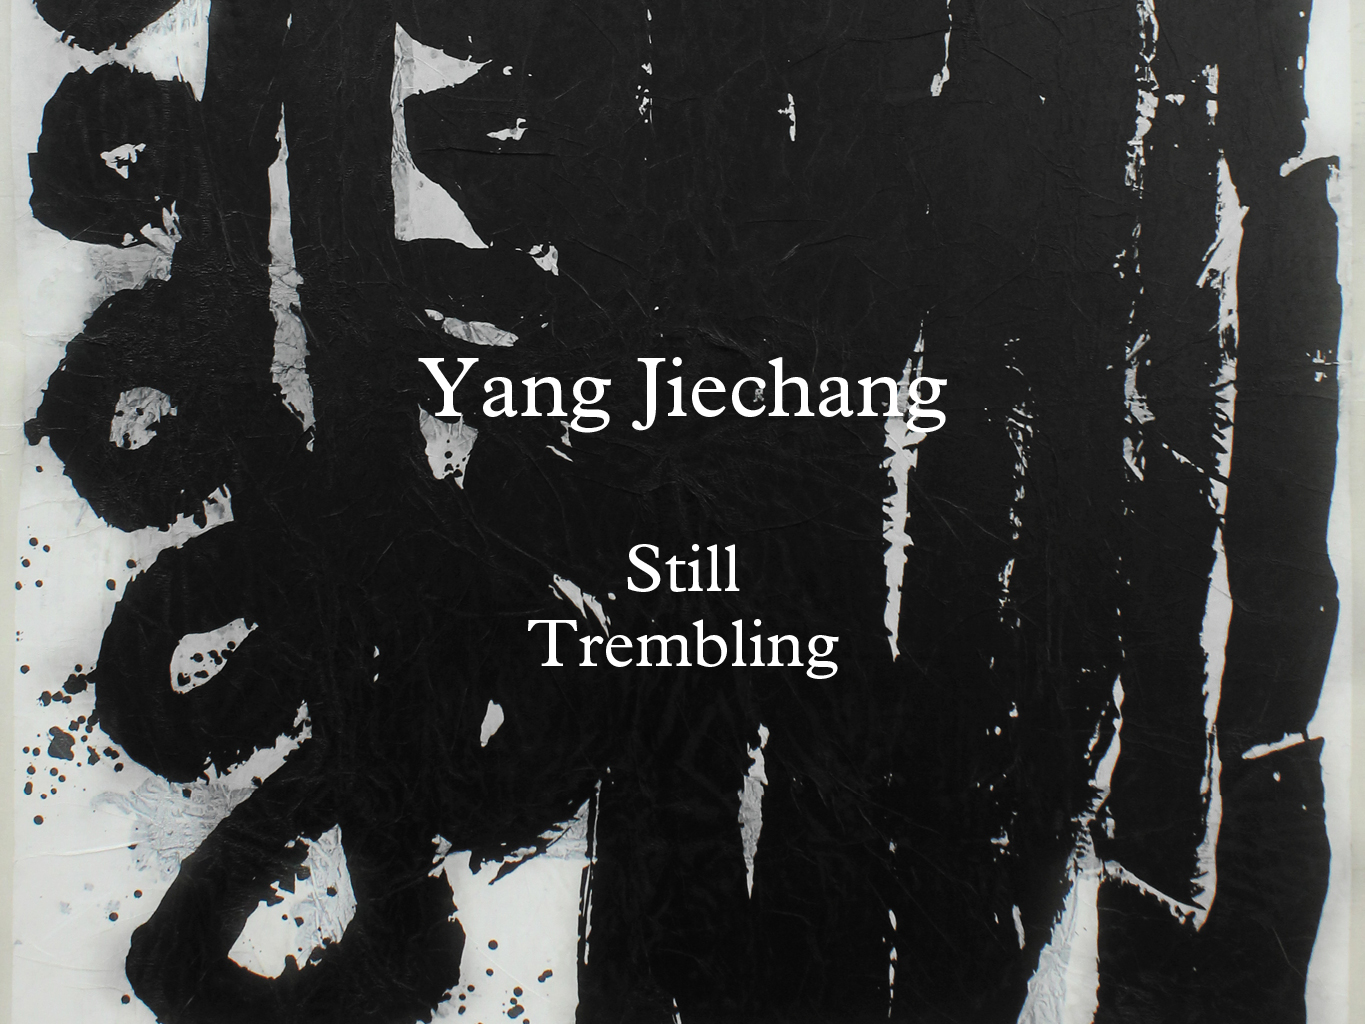 Yang Jiechang – Still Trembling